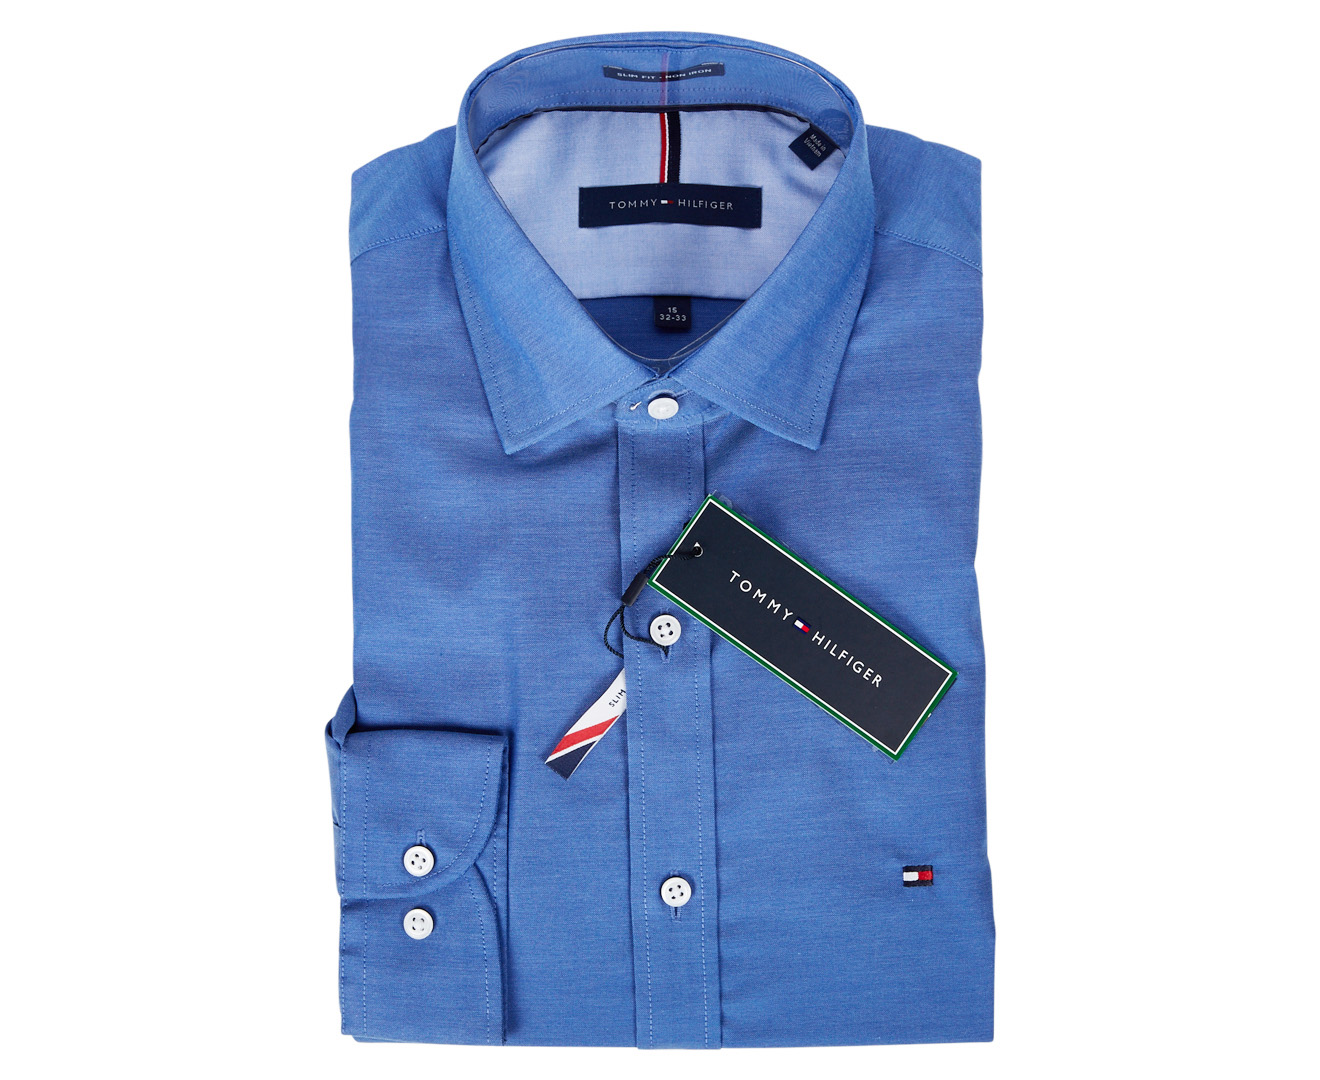 Shop agencja-nieruchomosci.tk and find the best online deals on everything from Tommy Hilfiger. Free Shipping on orders over $45 at agencja-nieruchomosci.tk